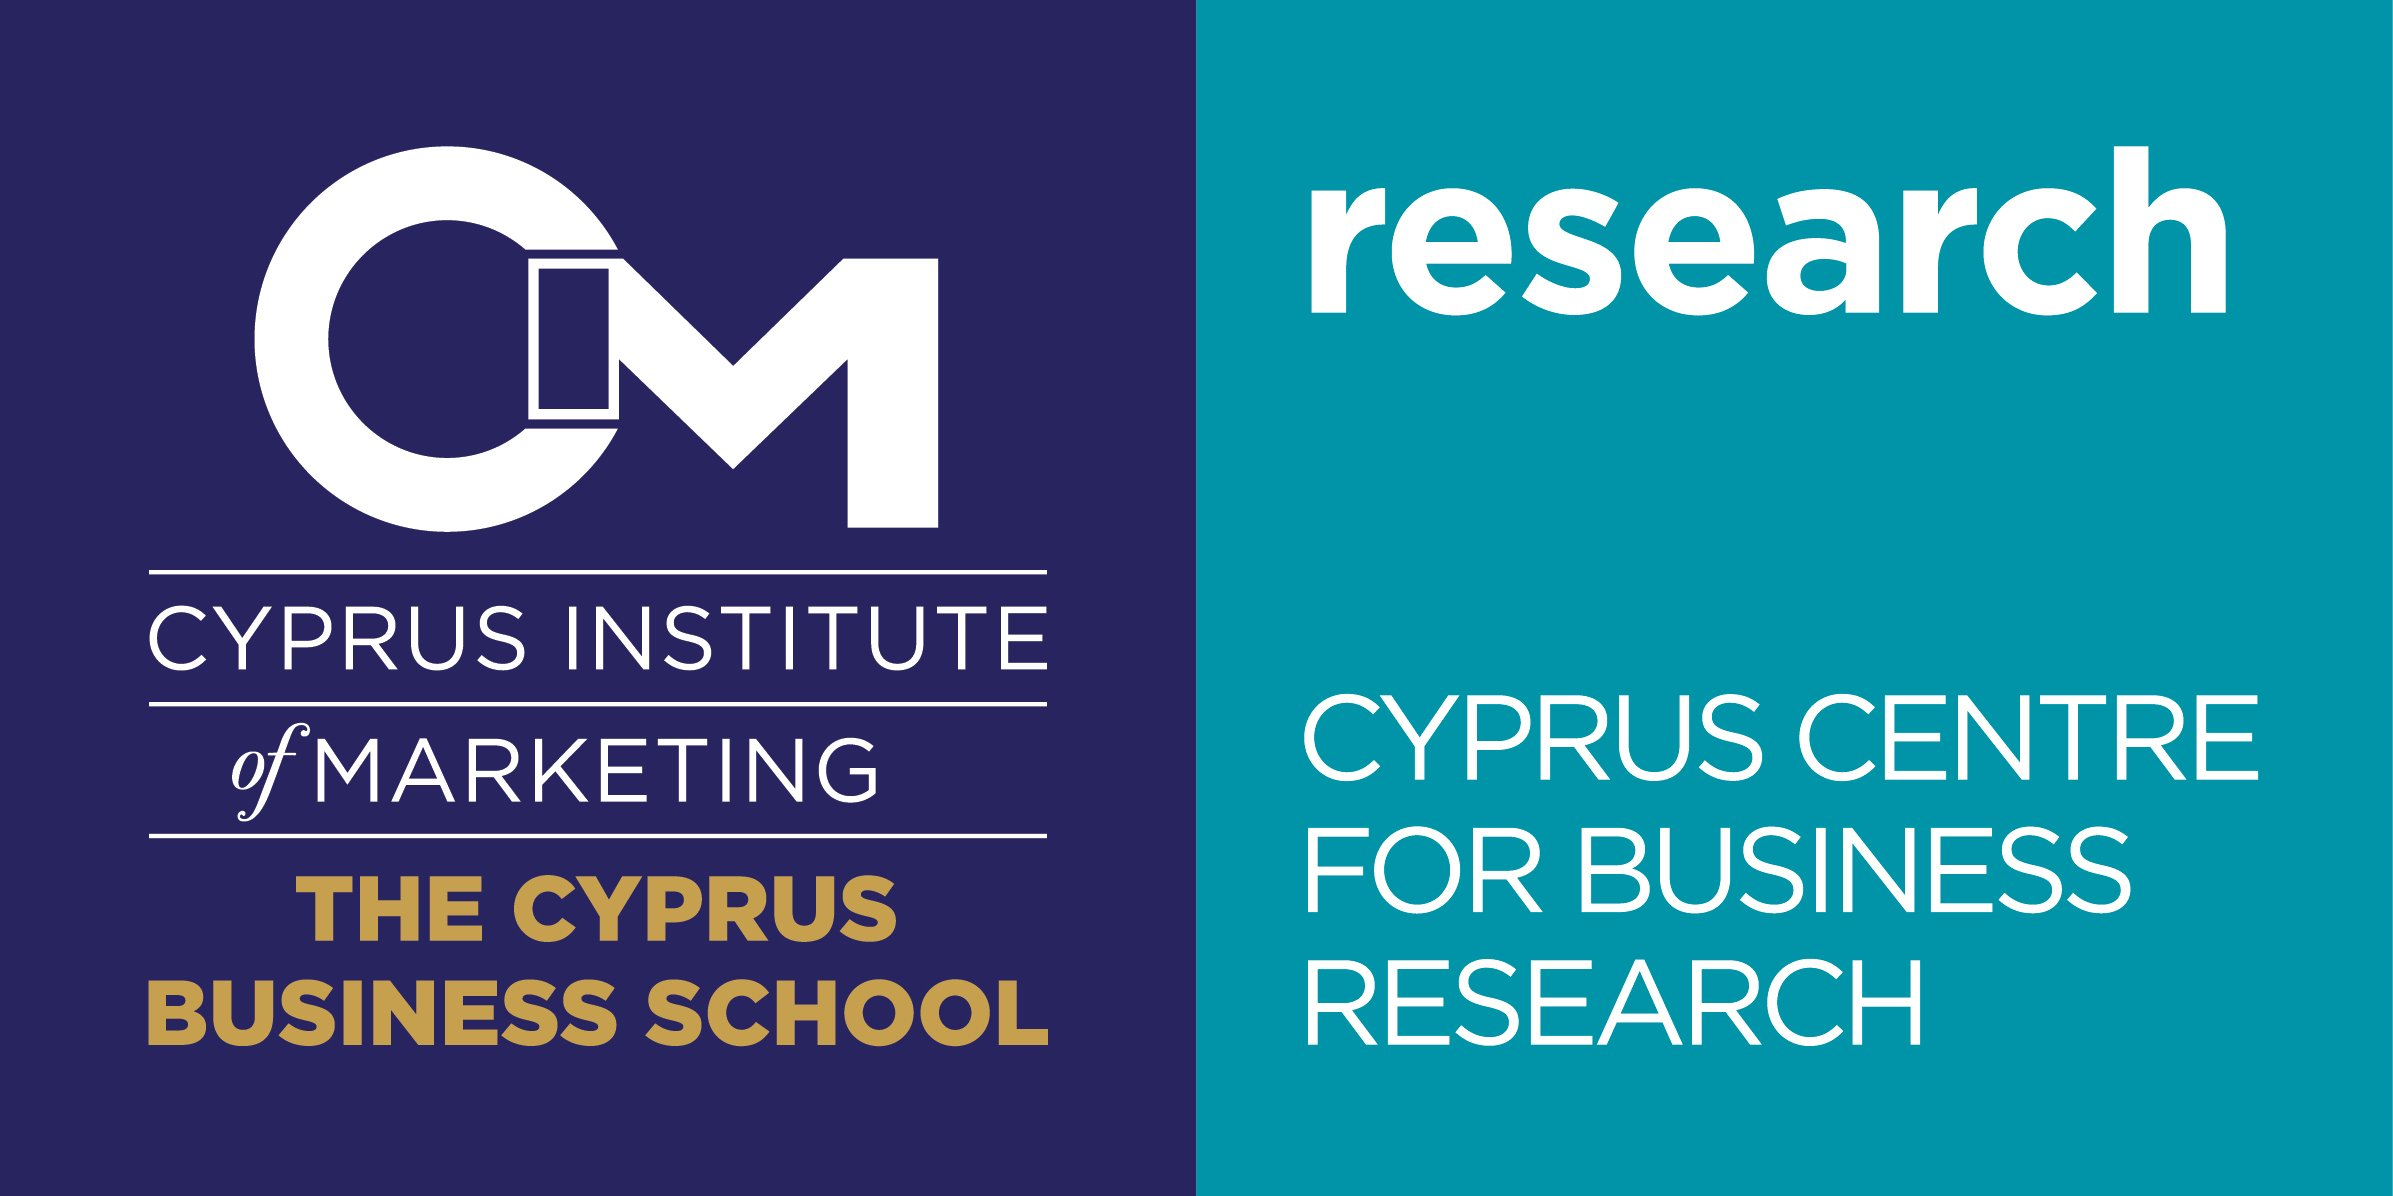 CIM RESEARCH CENTRE NEW LOGO